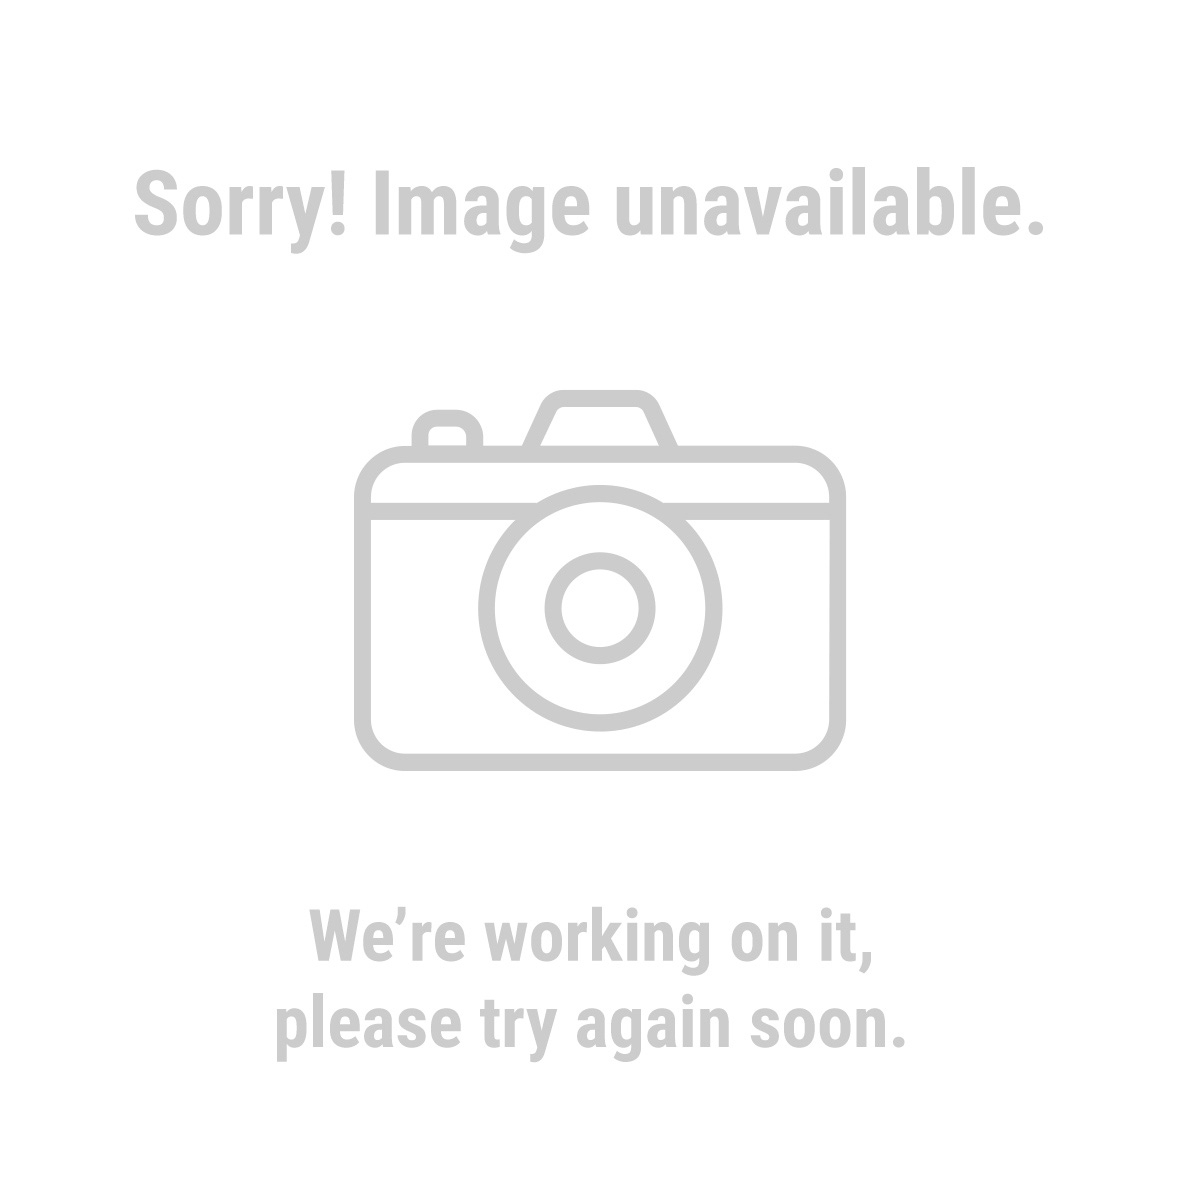 Central Pneumatic 97080 1/3 Horsepower, 3 gal., 100 PSI Oilless Air Compressor